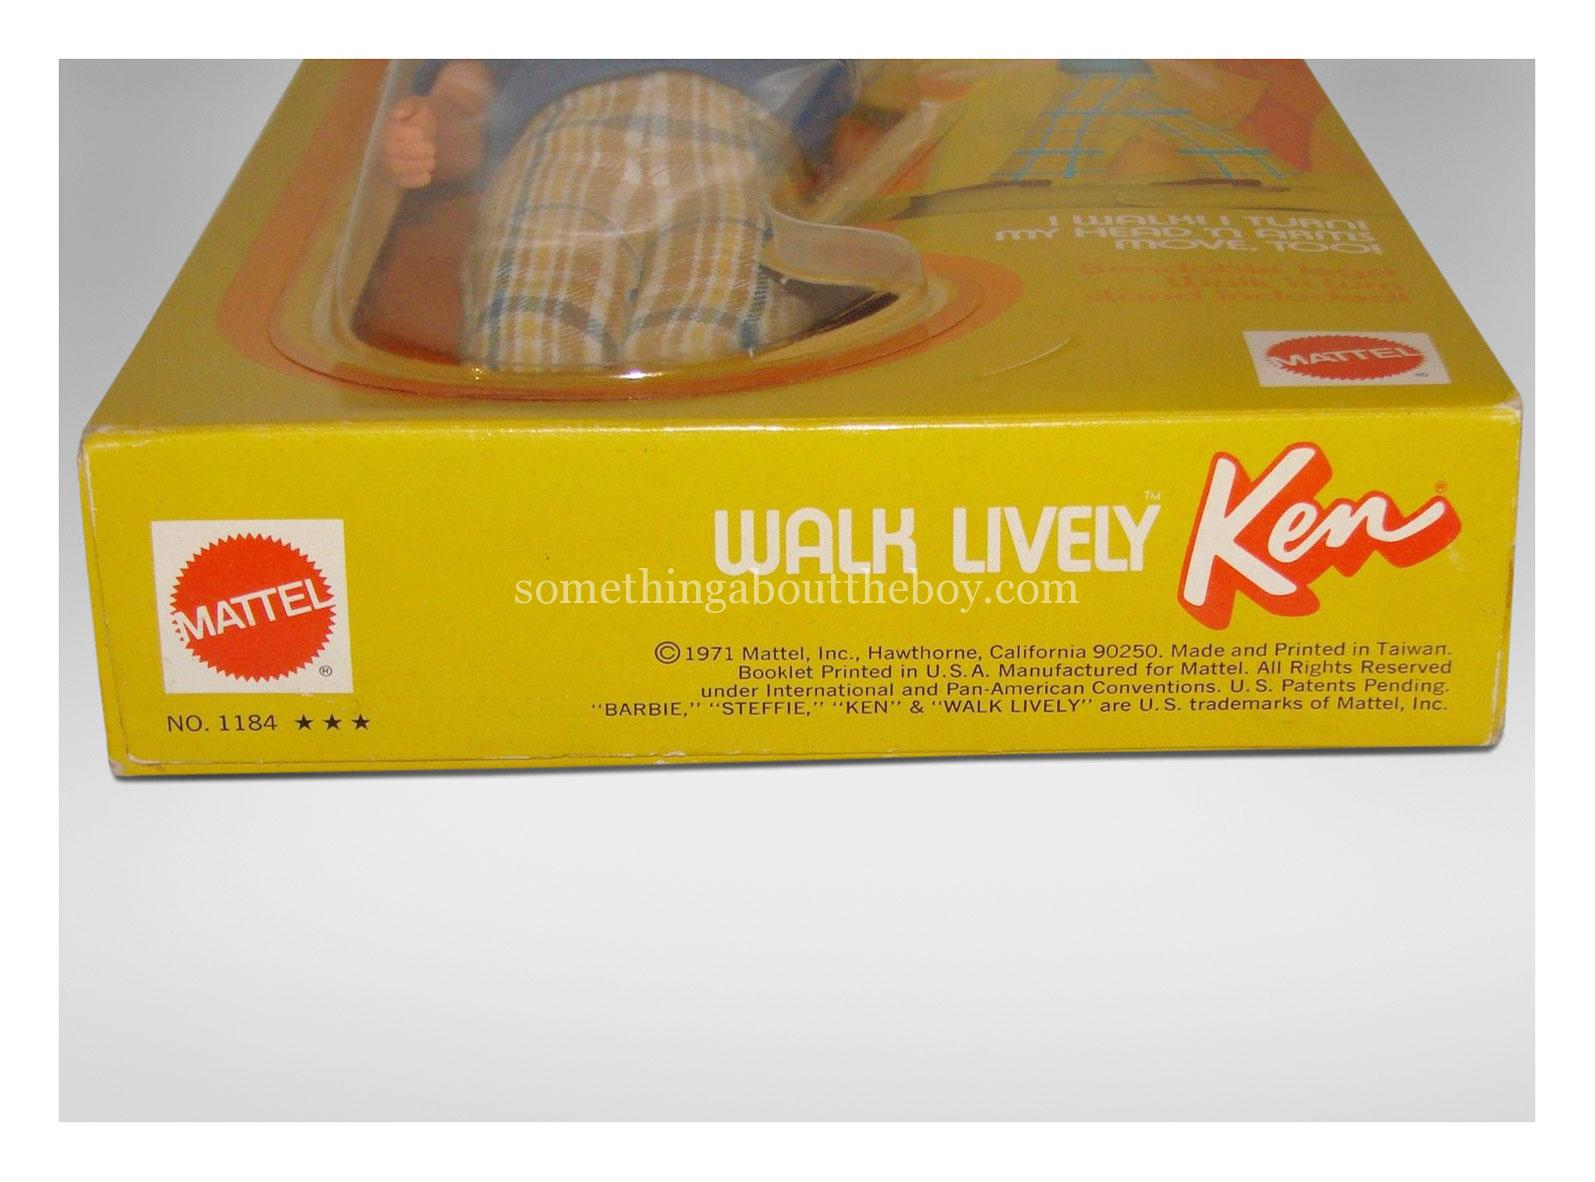 1972 #1184 Walk Lively Ken original packaging (Detail)